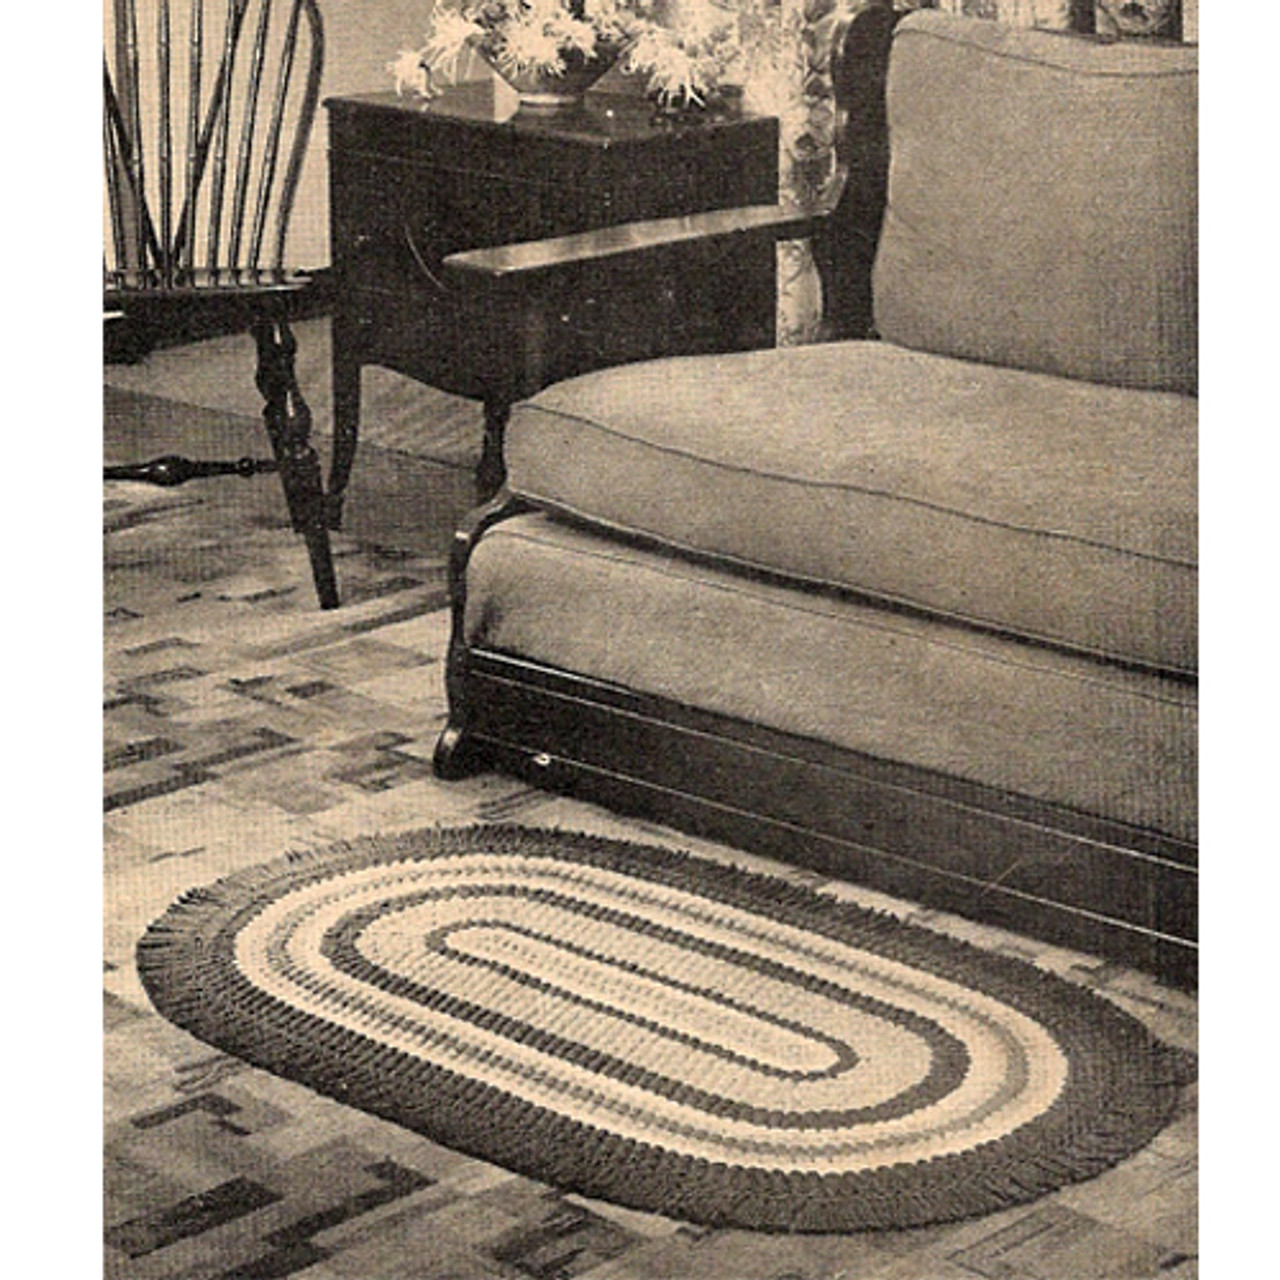 Vintage Oval Crochet Rug Pattern in three colors